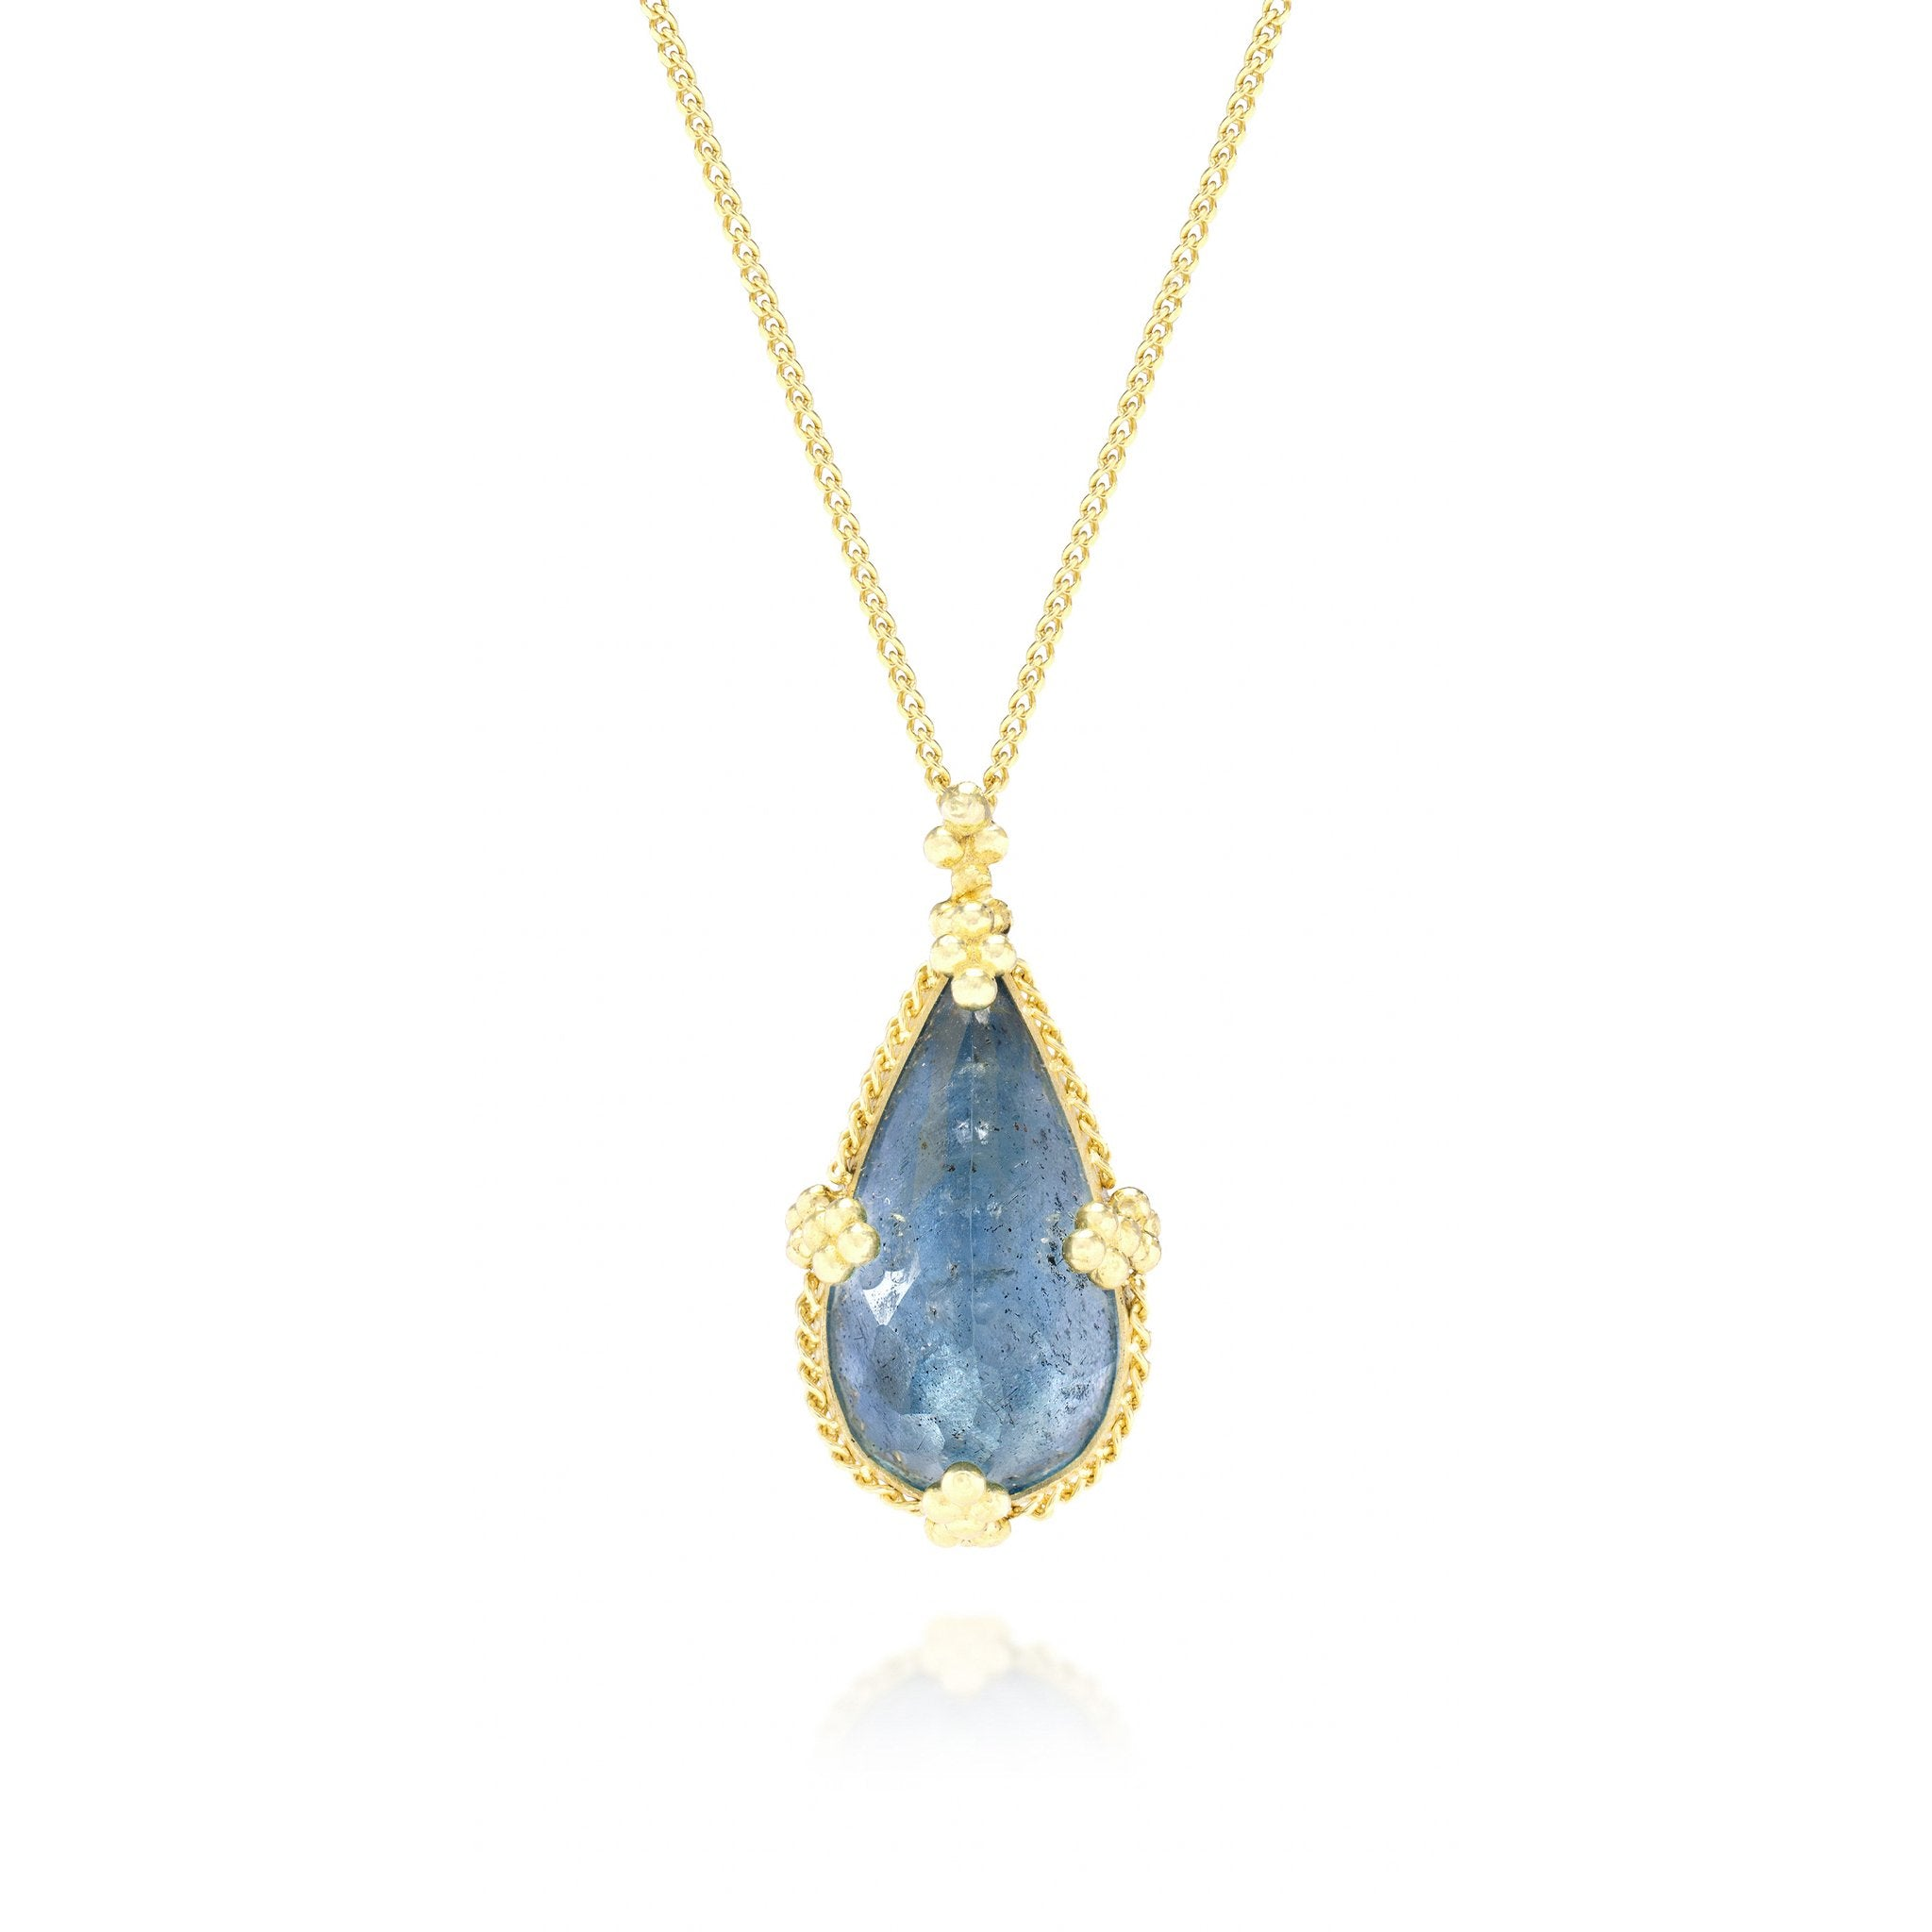 Amali-Aquamarine Teardrop Necklace